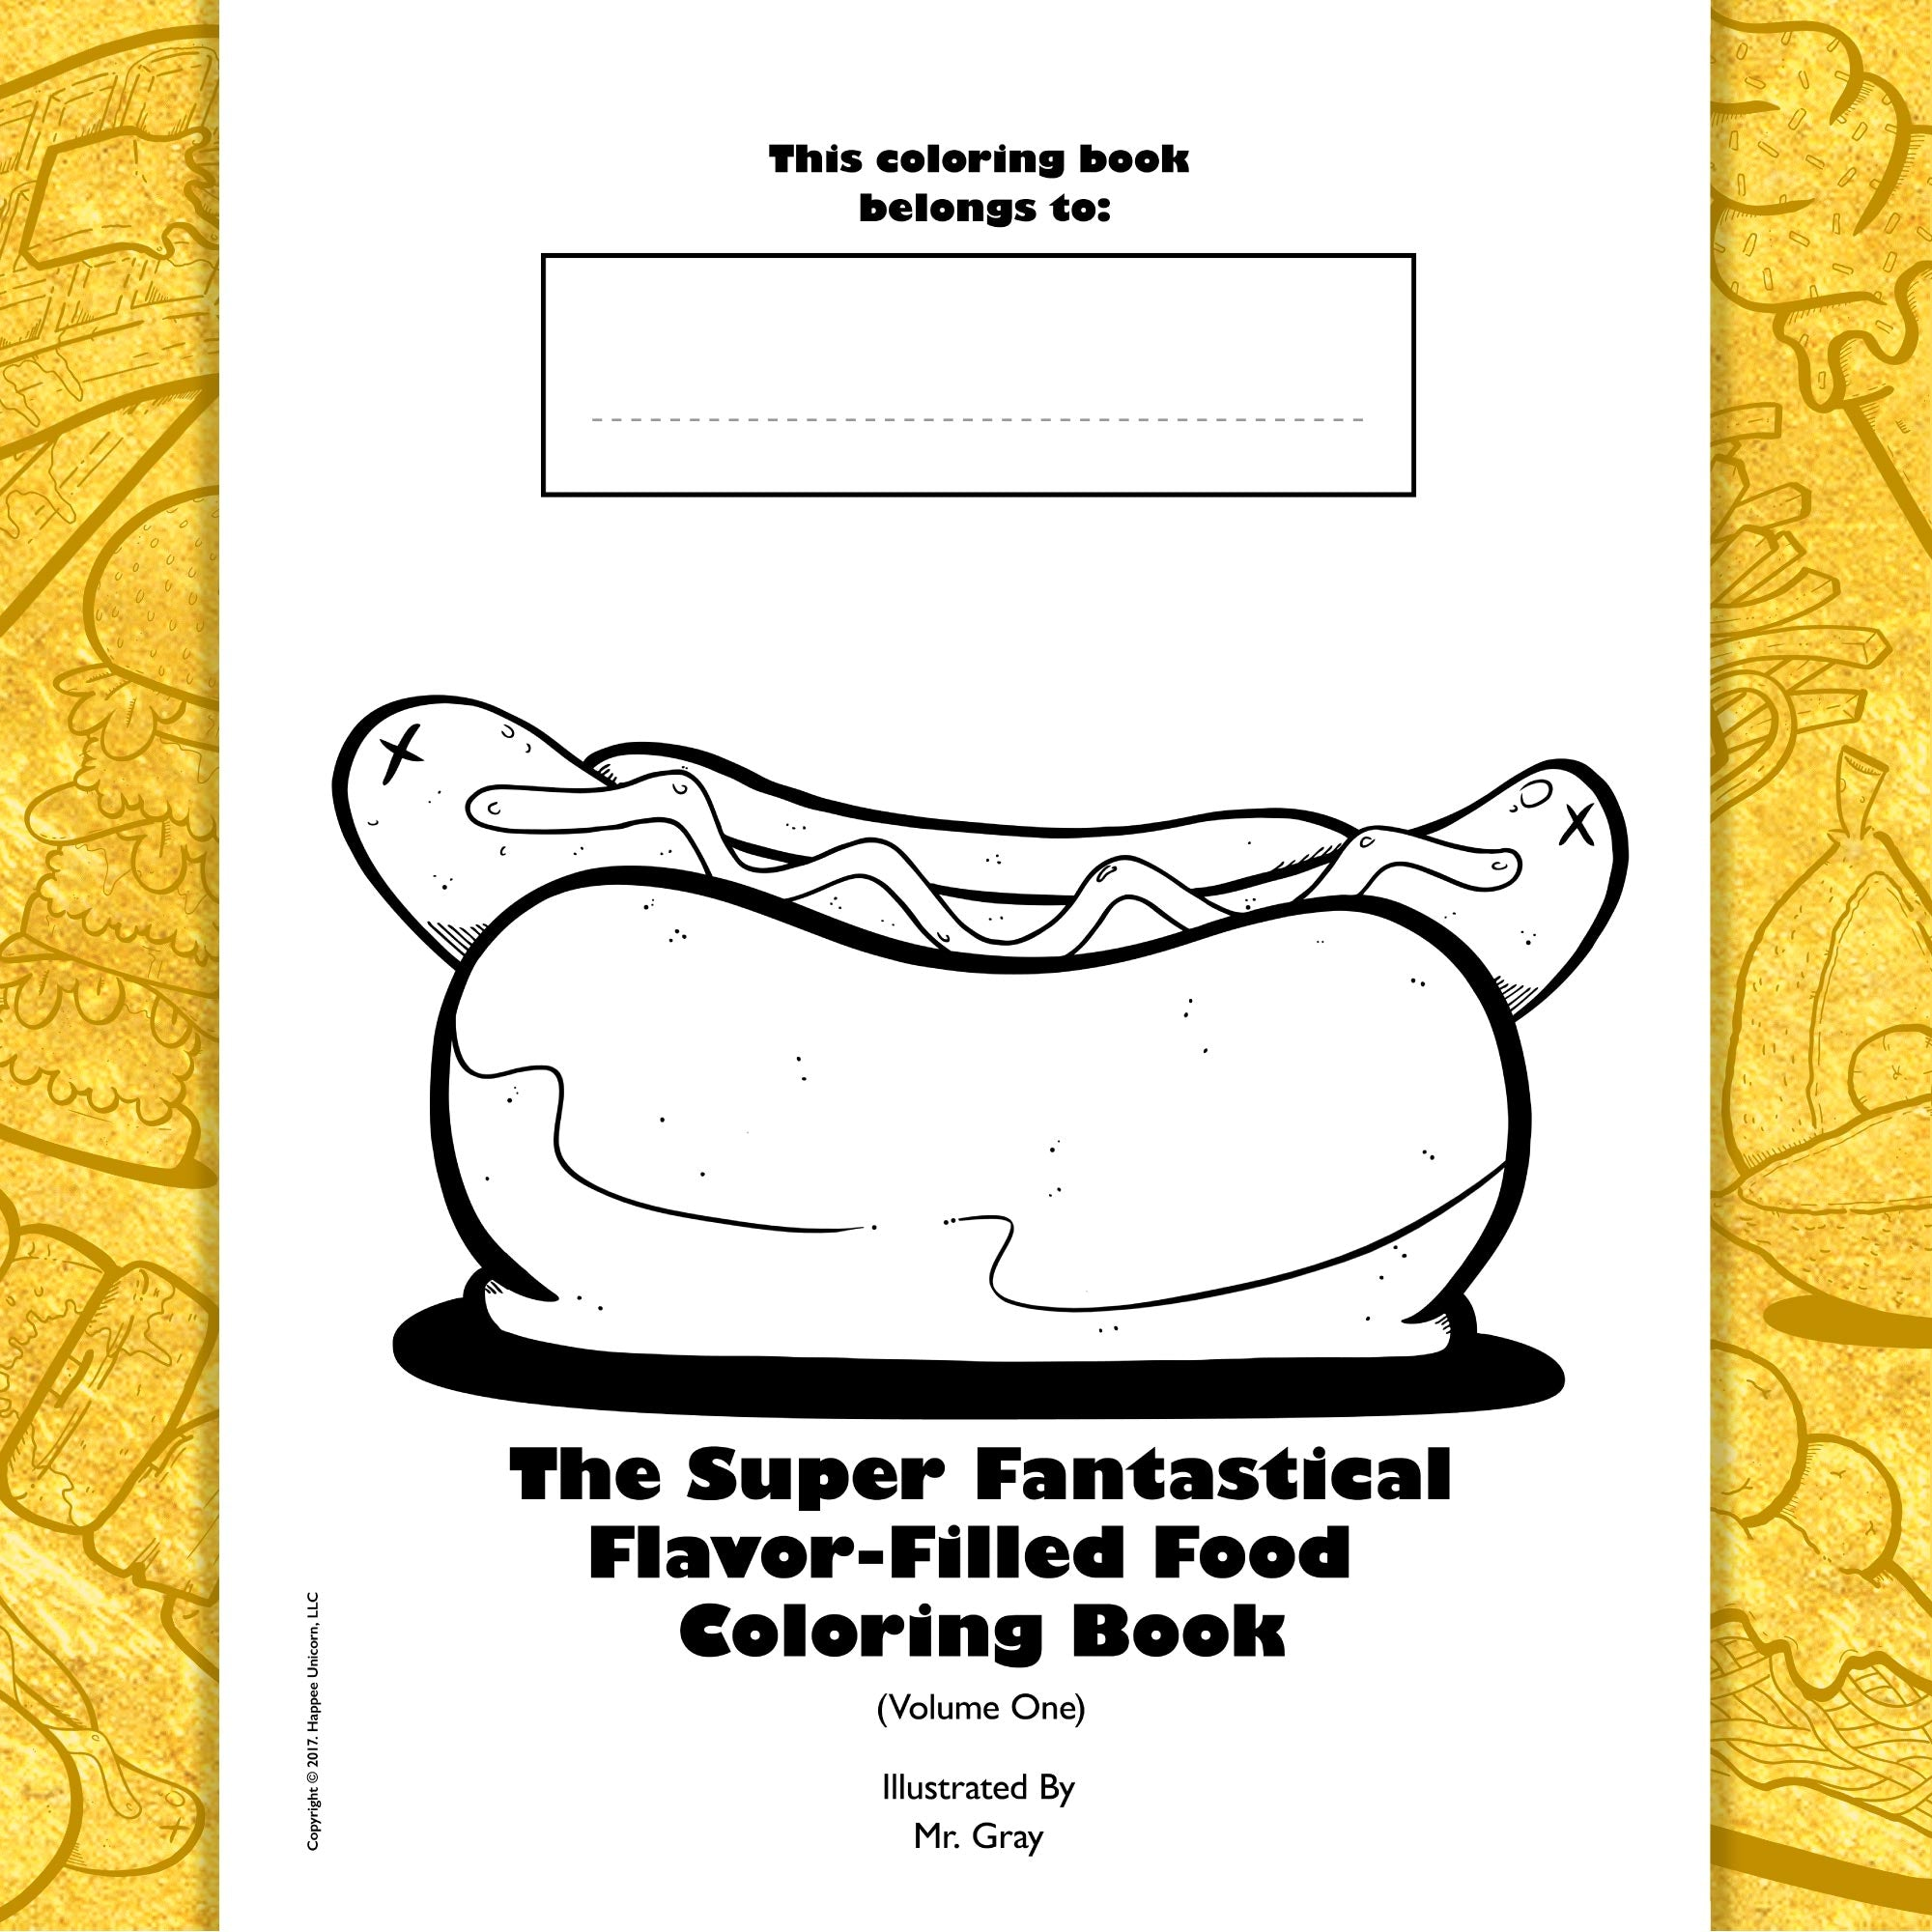 copyright-©-2017-the-super-fantastical-flavor-filled-food-coloring-book-volume-one-by-mr-gray-look-inside-02